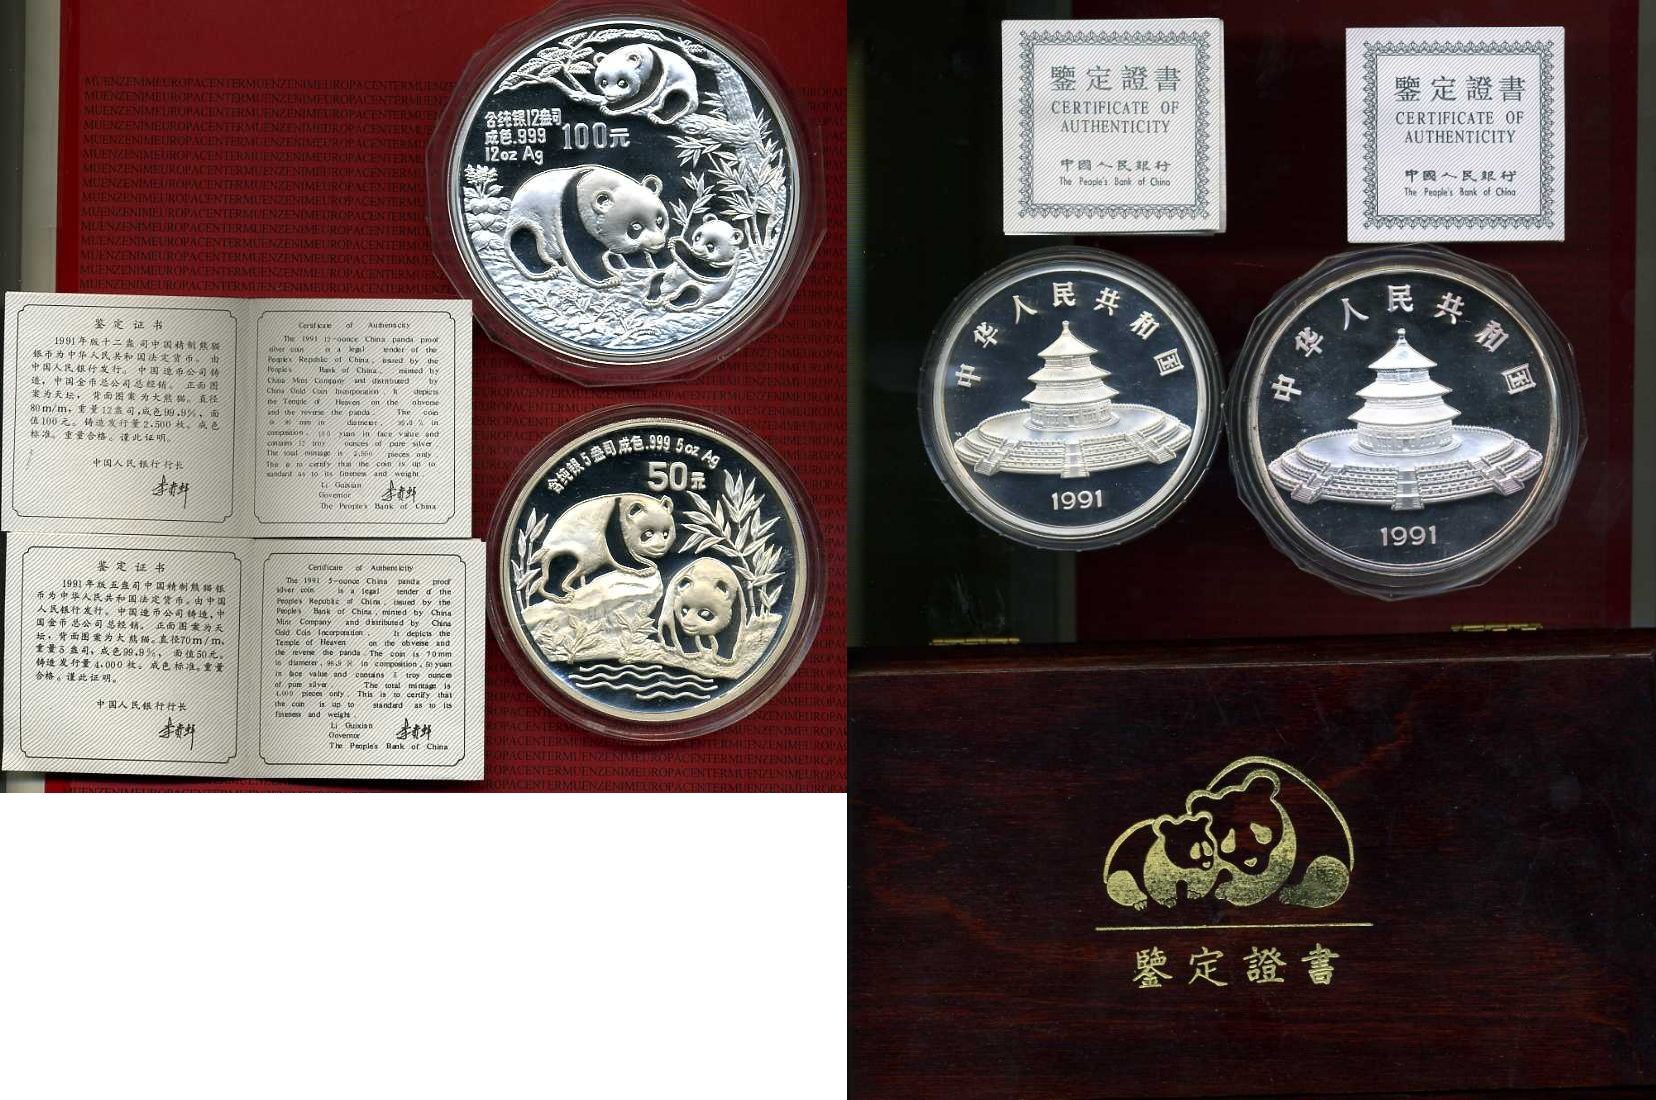 50 und 100 Yuan Silbermünzen Set 1991 China Set China 50 and 100 Yuan 5 and 12 Ounces Panda 1991 Proof w Box and COA proof w. wooden box coa